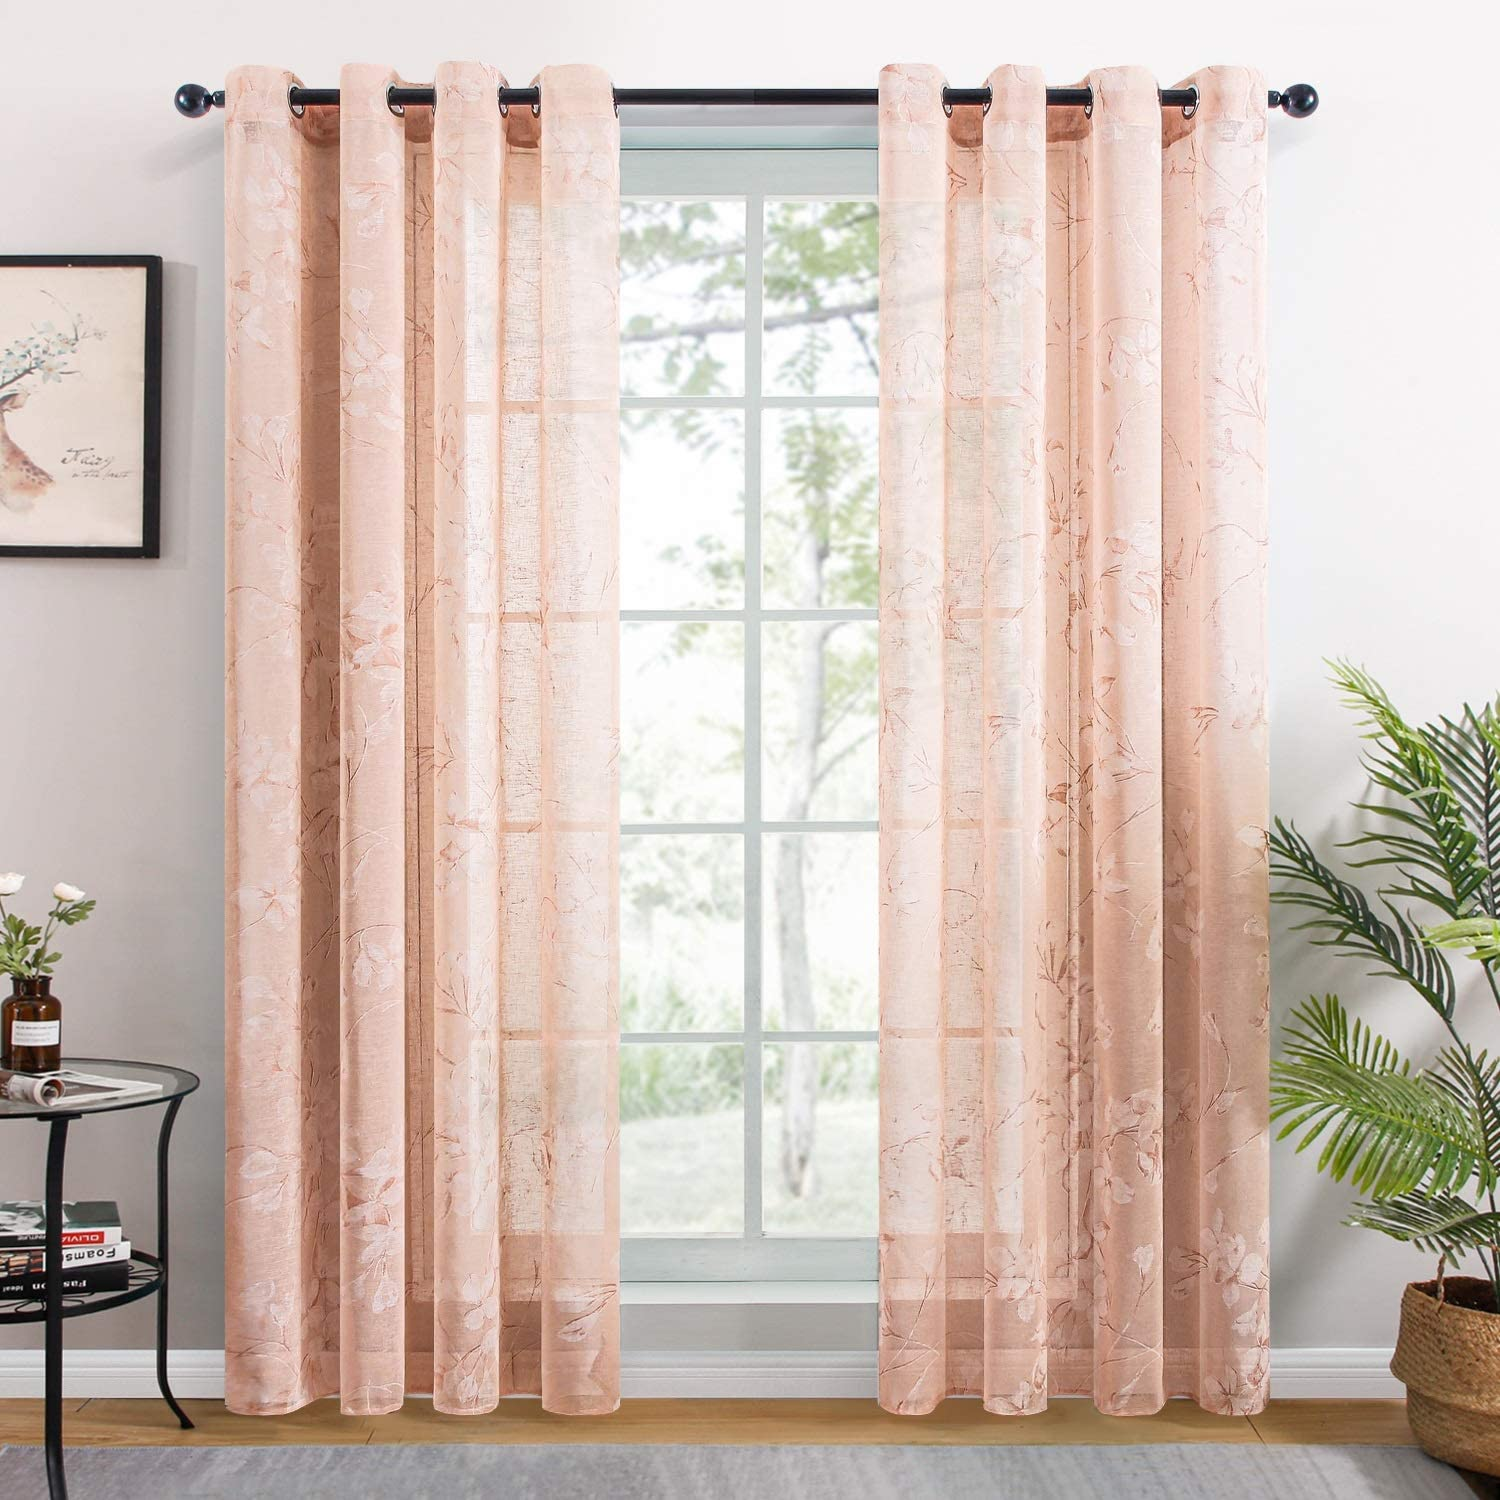 famous AFANGMQ Set of Popular 2 Sheer Curtains Kitchen Living Room for Bedroom